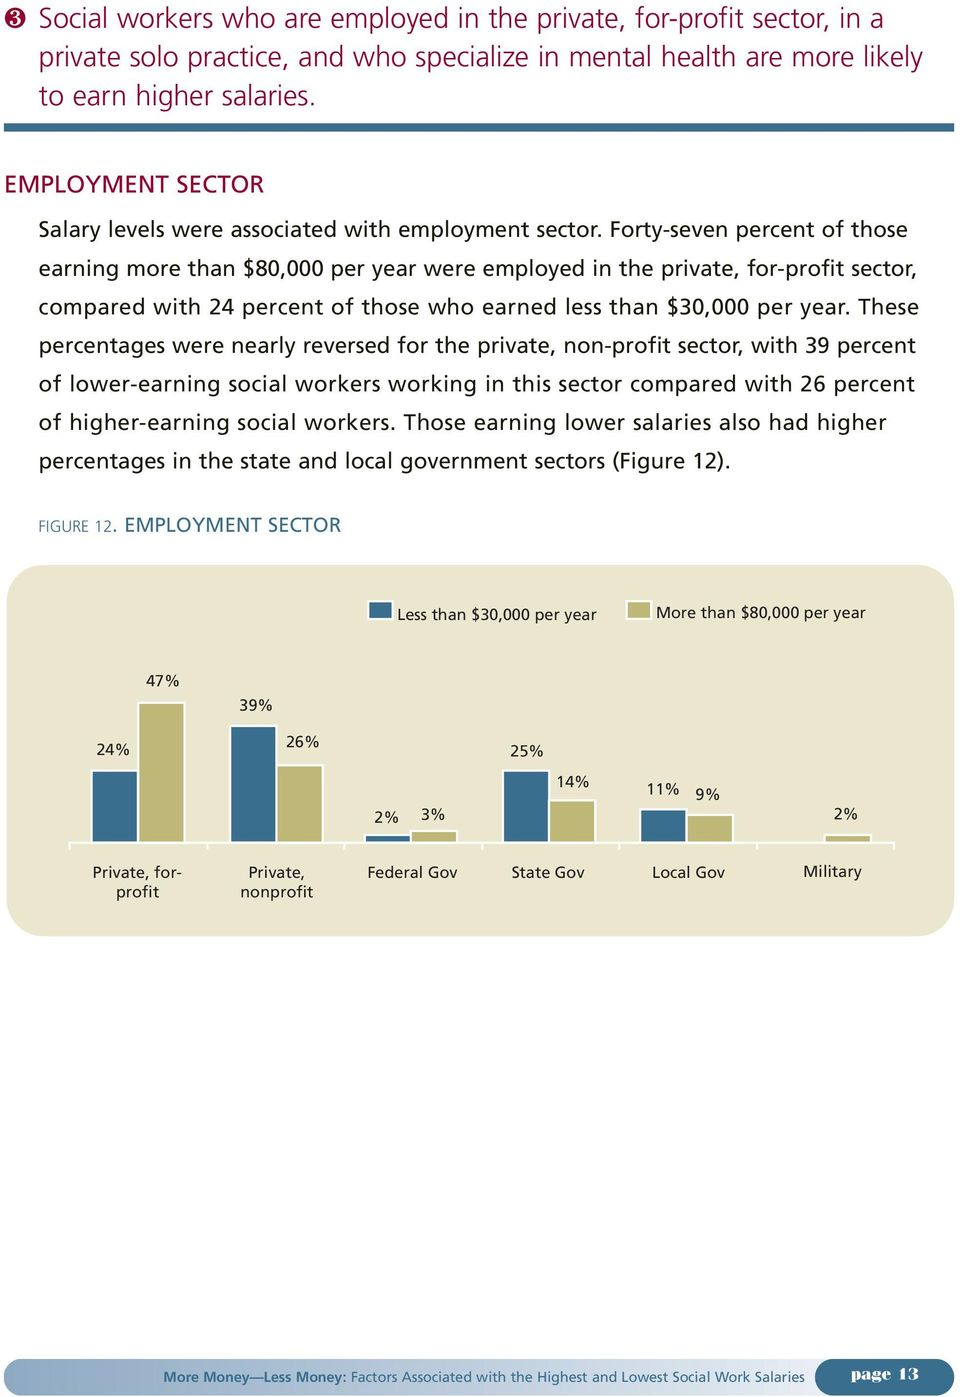 Forty-seven percent of those earning more than $80,000 per year were employed in the private, for-profit sector, compared with 24 percent of those who earned less than $30,000 per year.